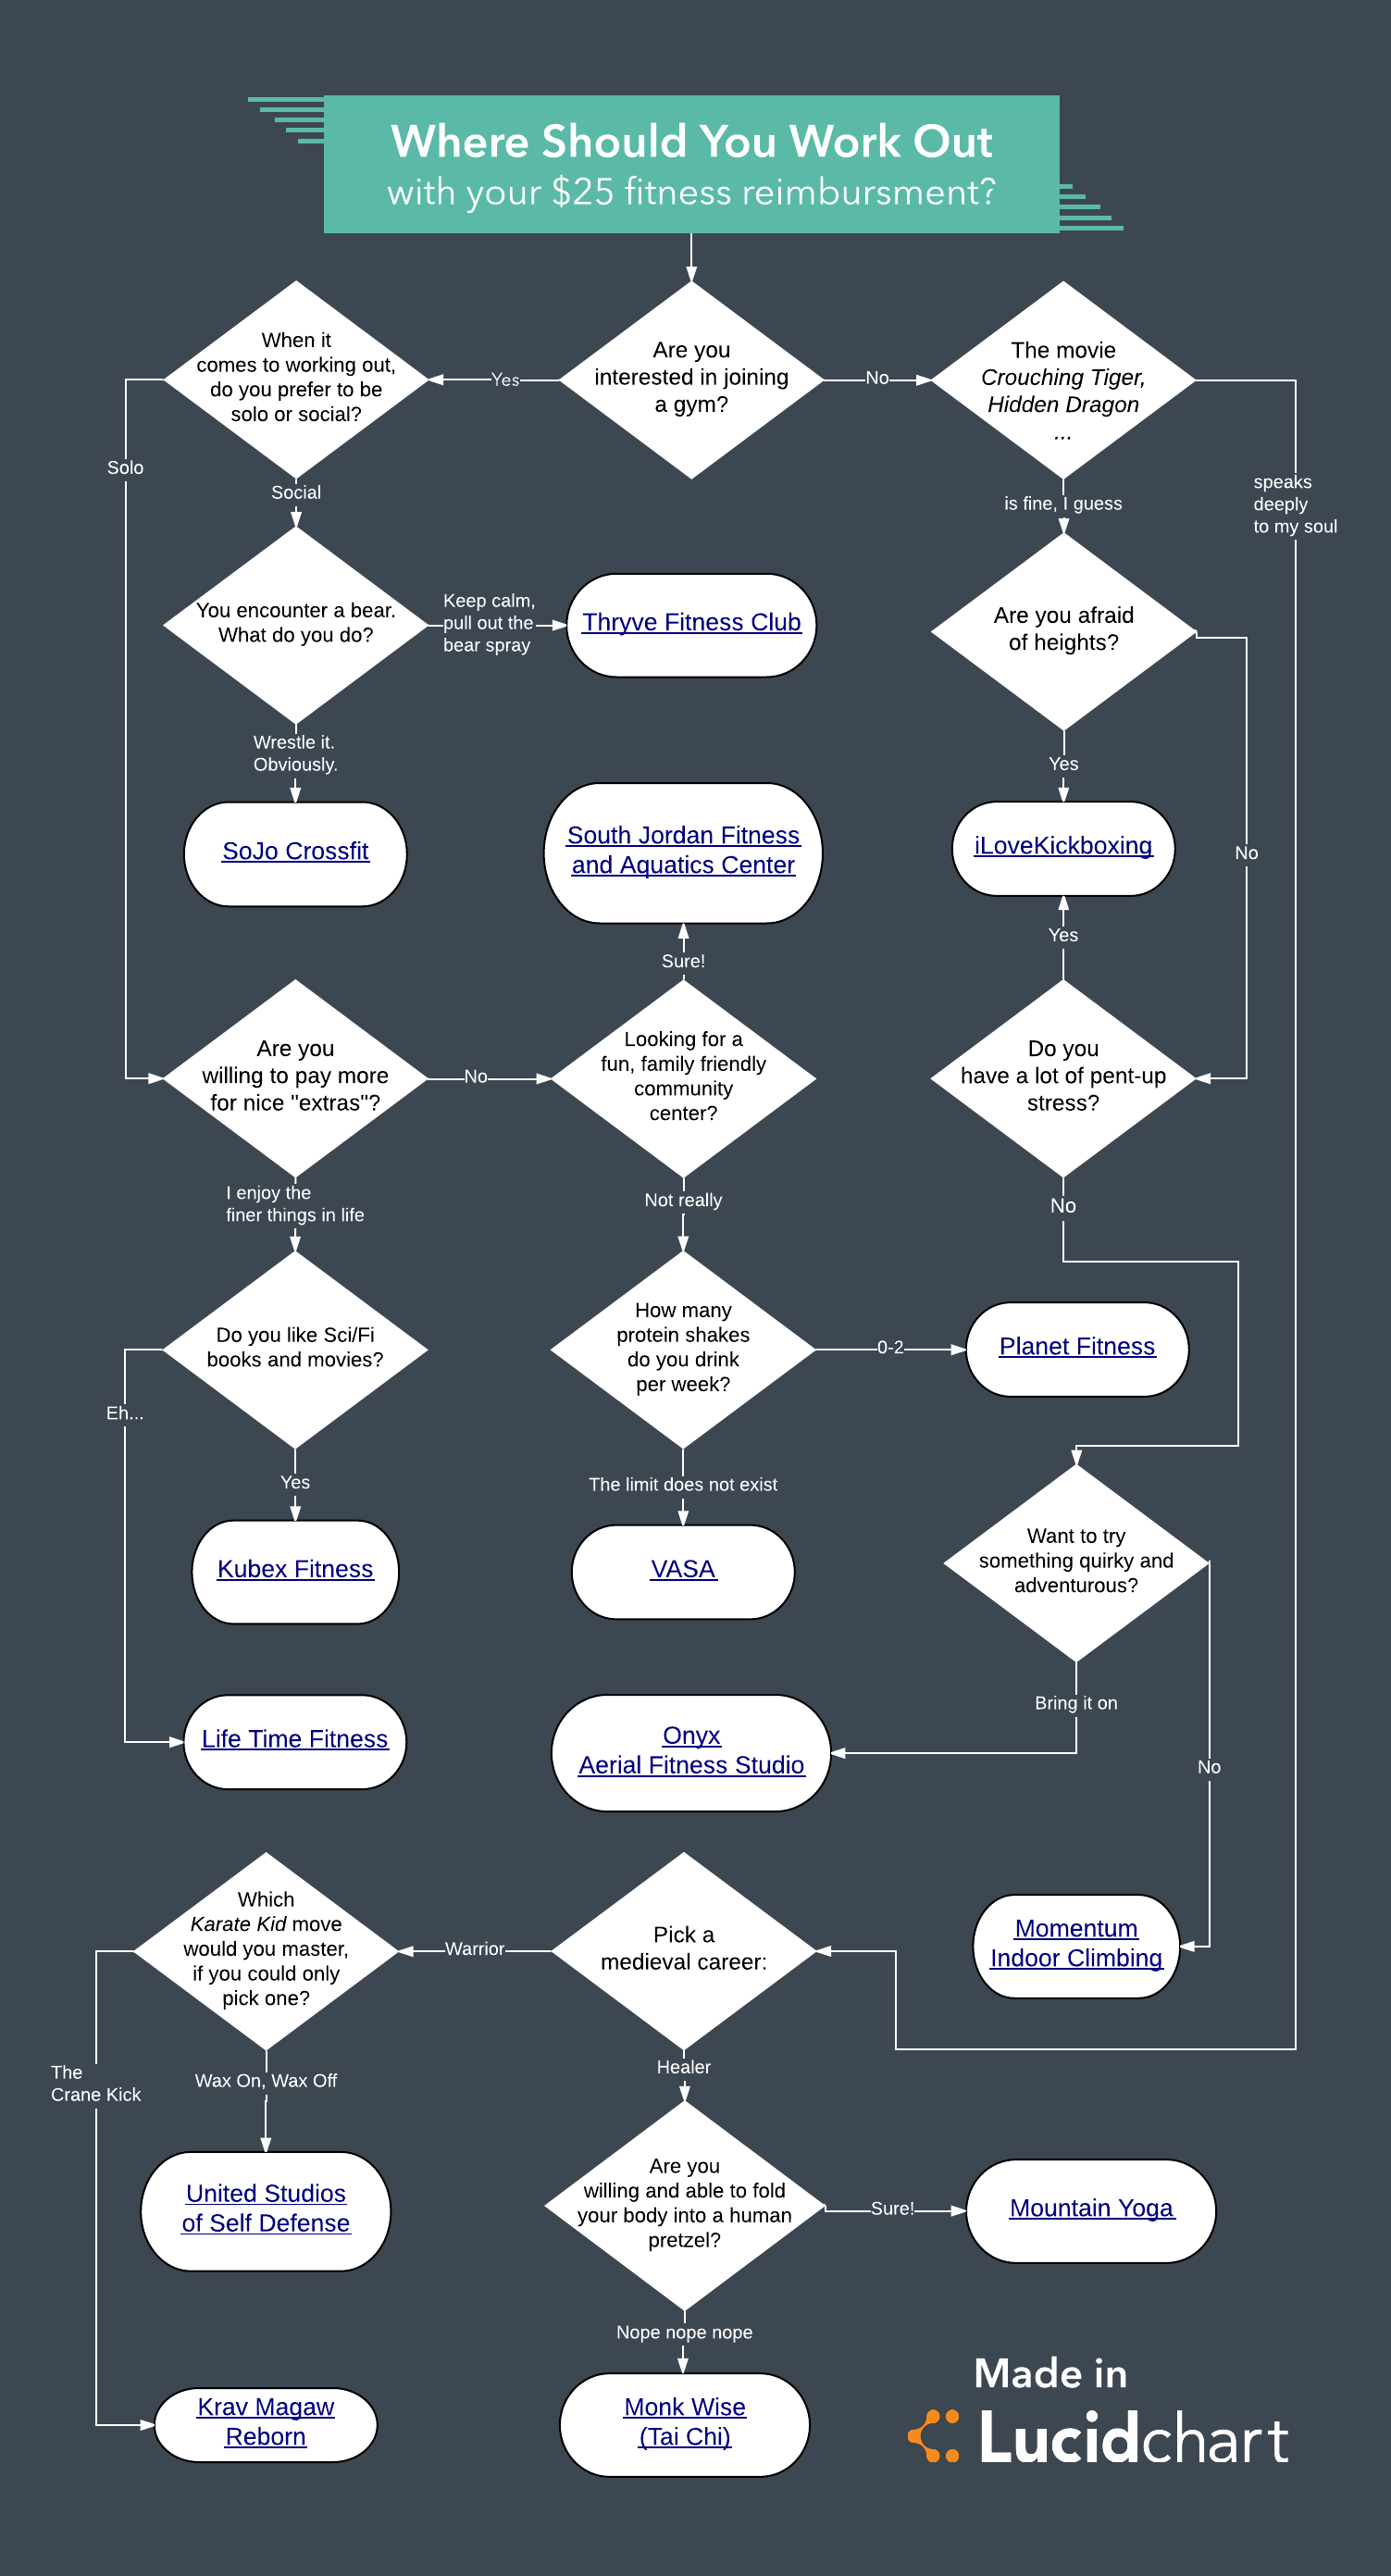 Where Should You Work Out flowchart